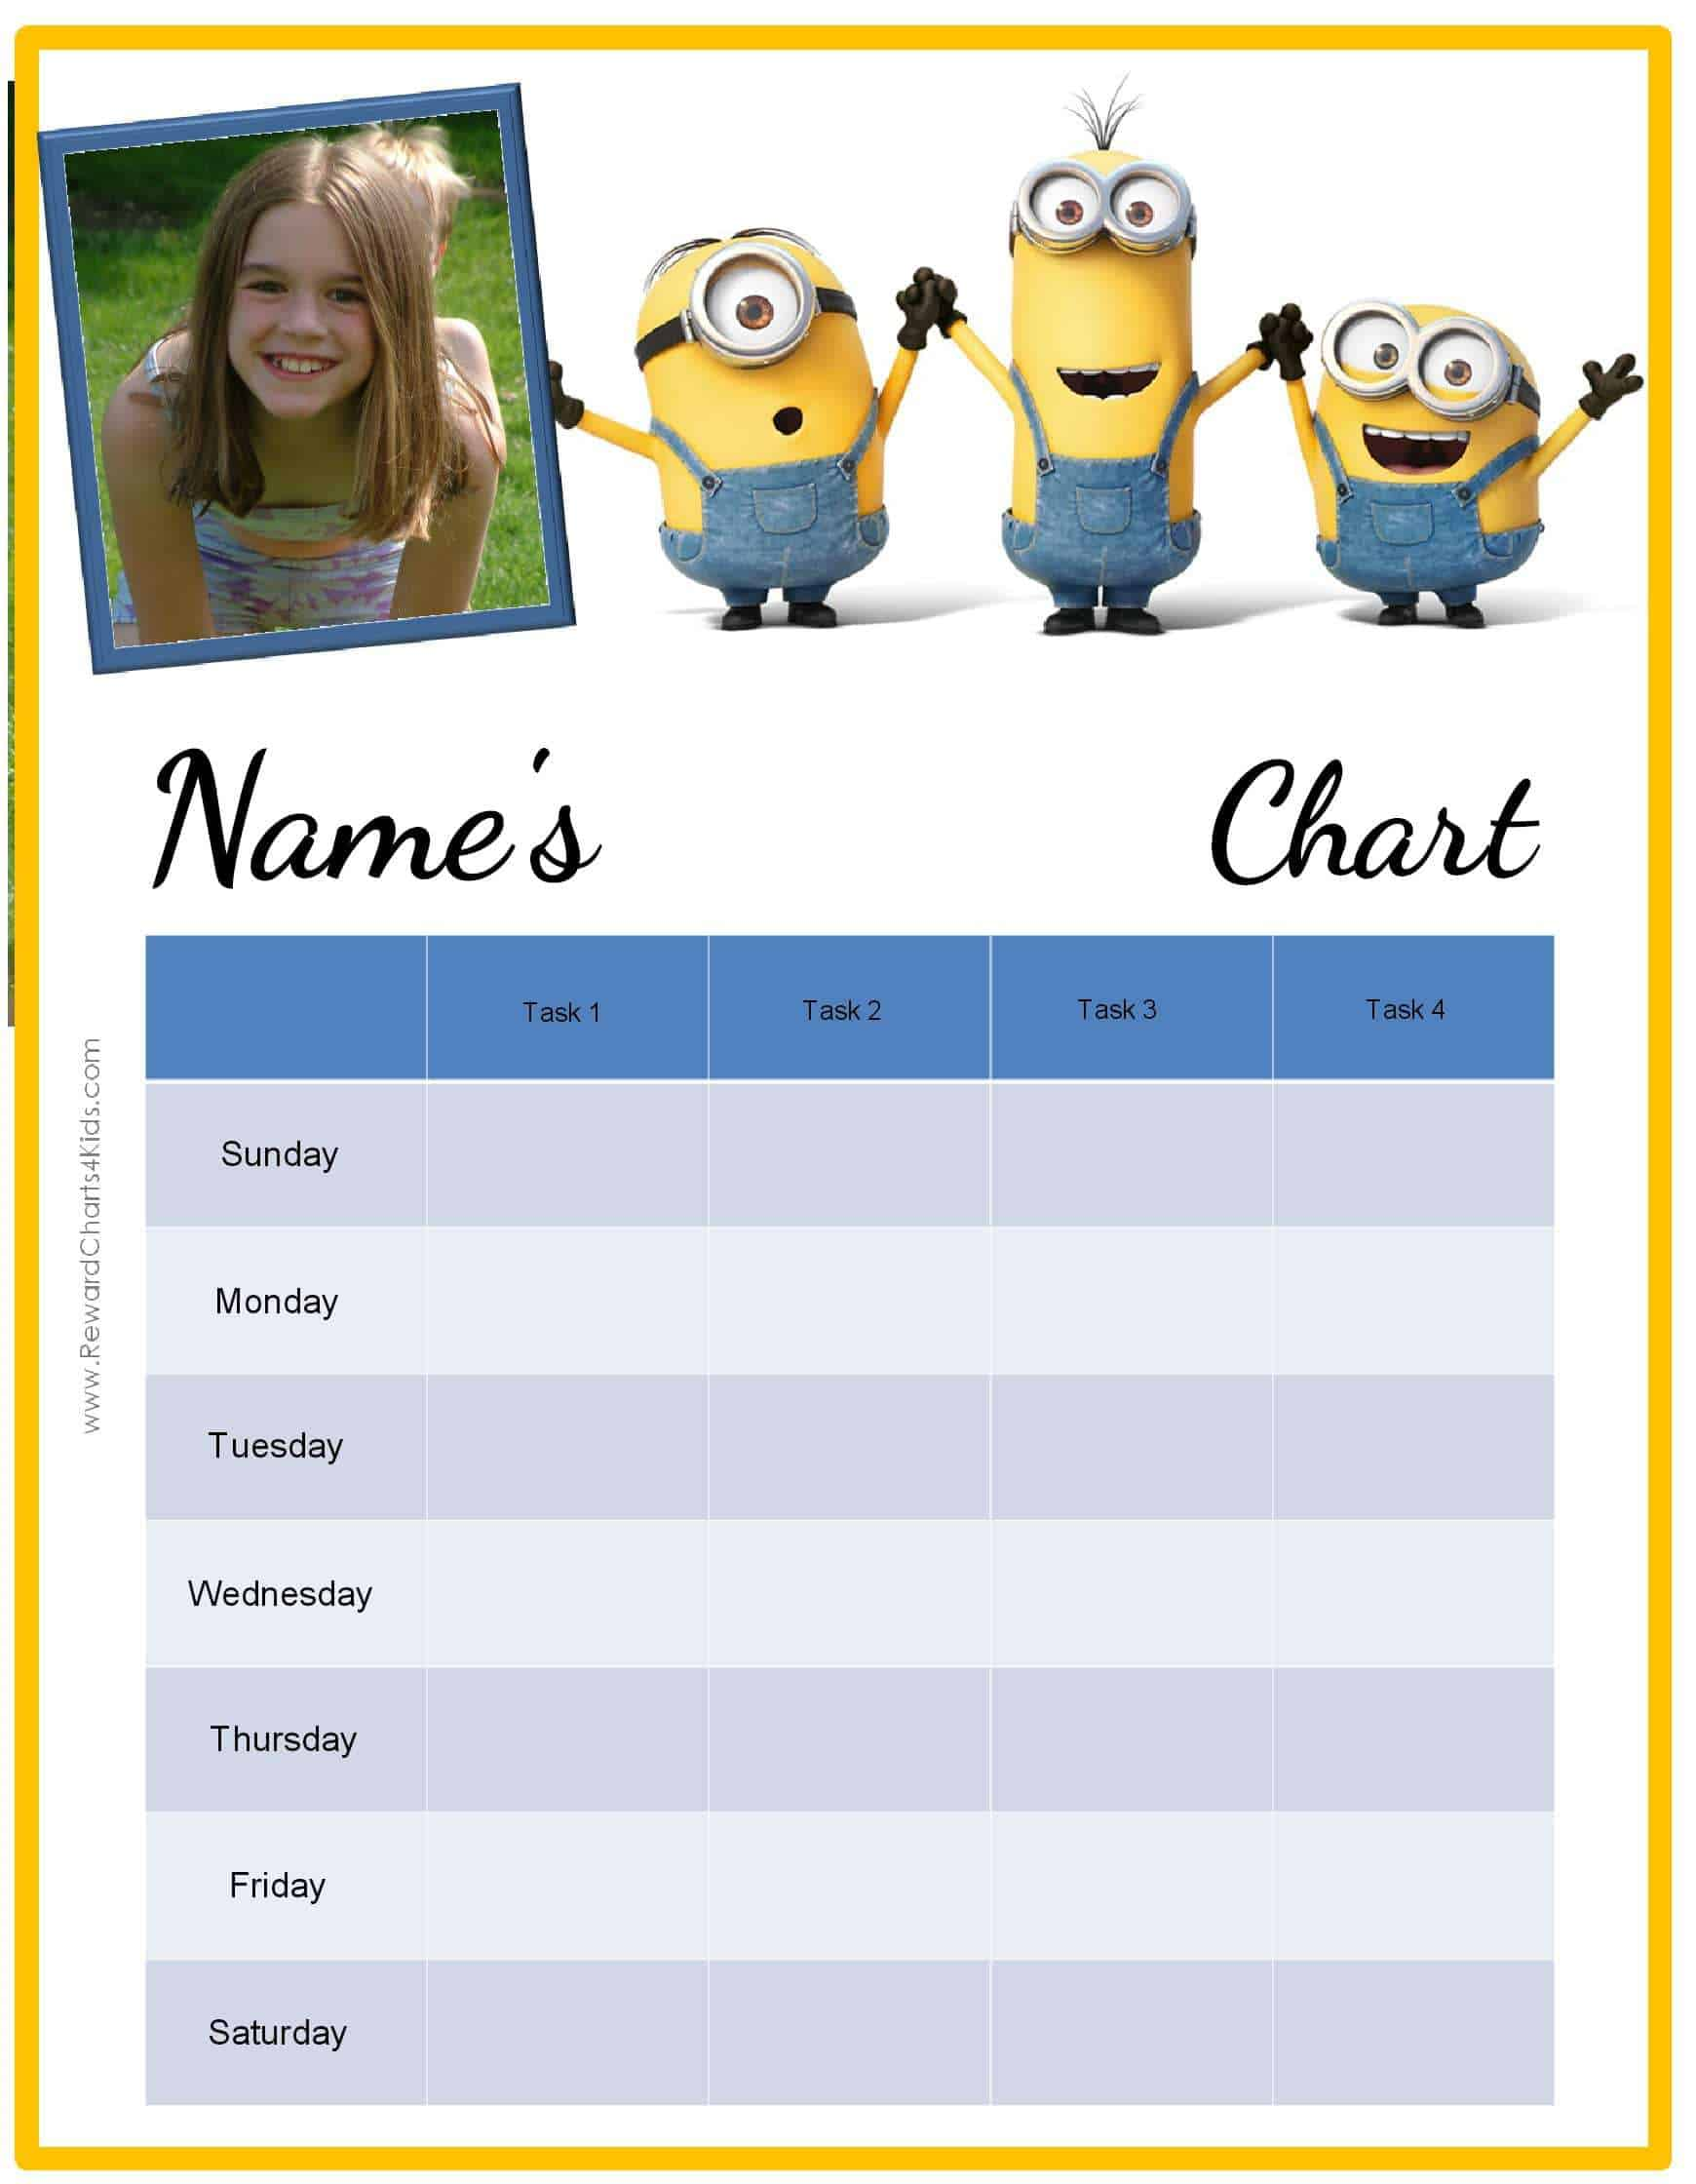 behavior charts the minions reward chart customize potty training chart customize